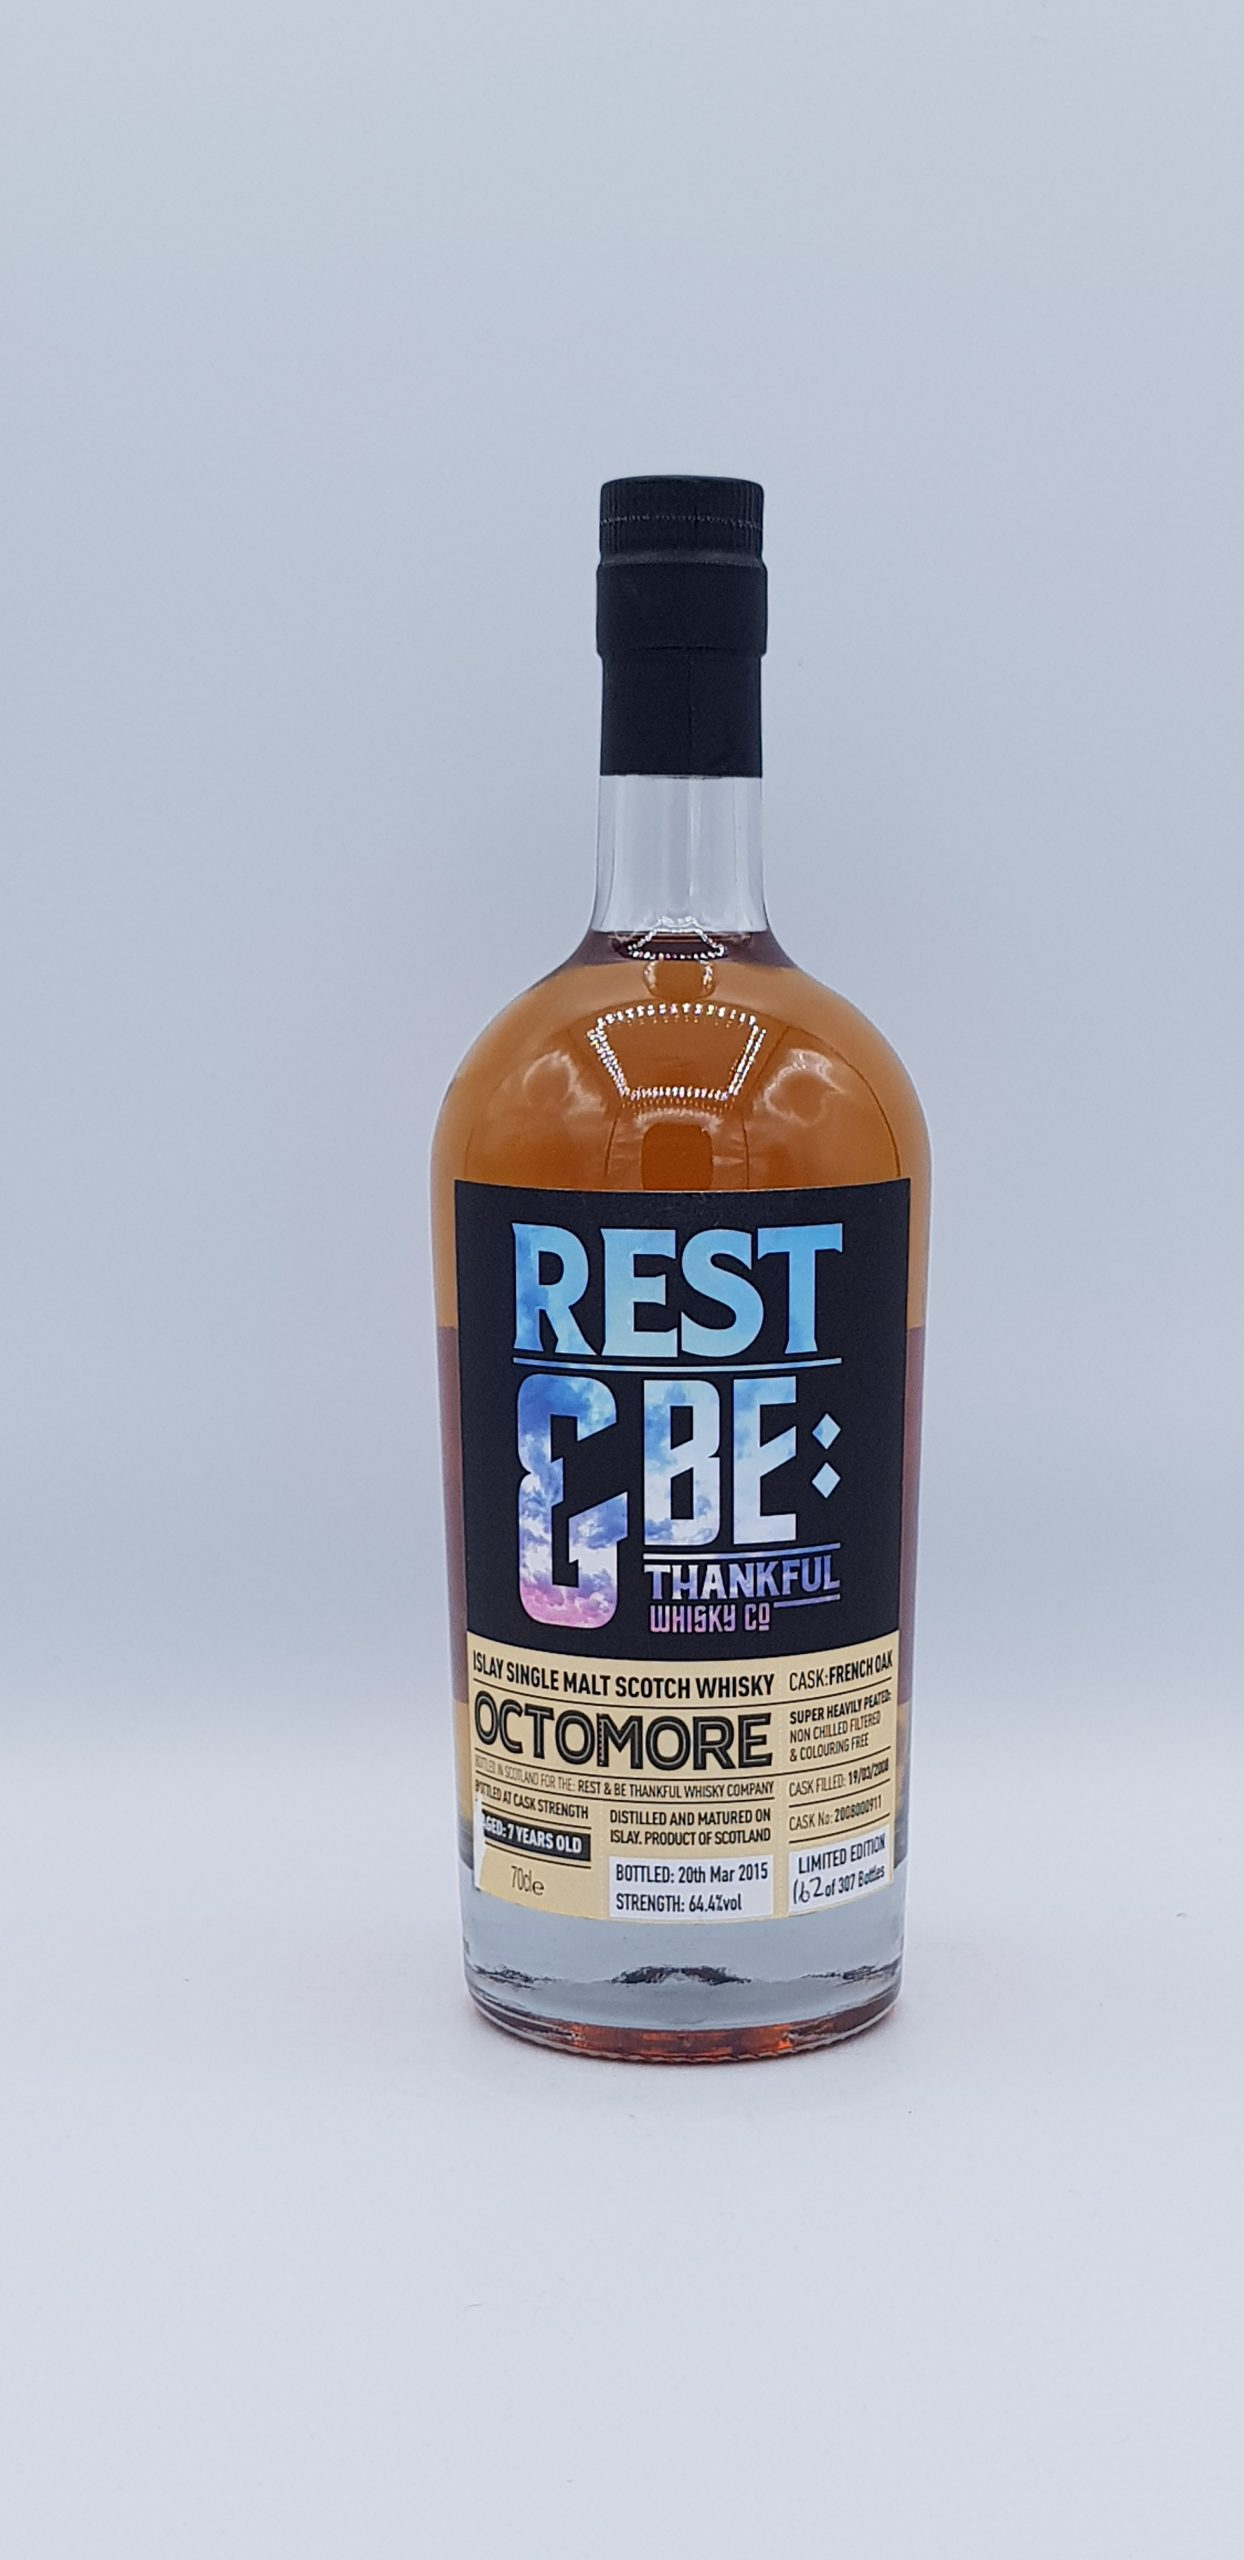 Whisky Octomore Rest And Be French Aok